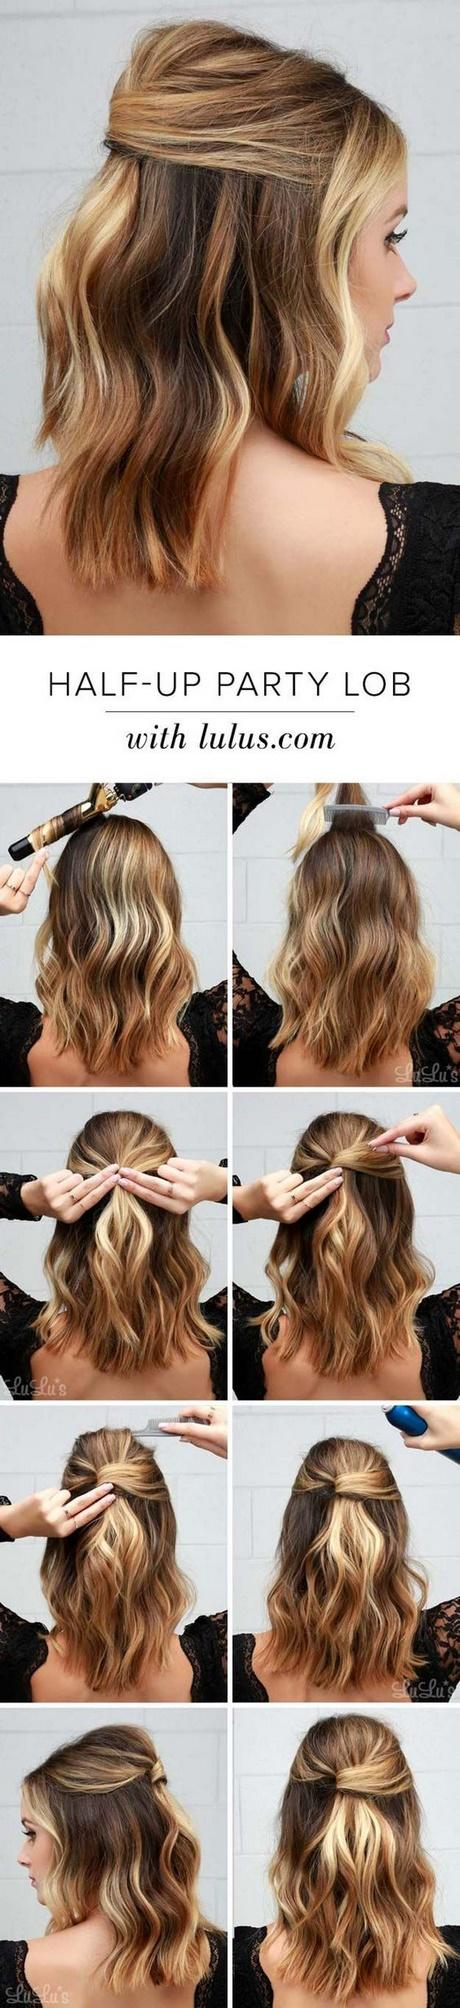 Hairstyles you can do yourself 3 prom or wedding hairstyles you can do yourself youtube solutioingenieria Images